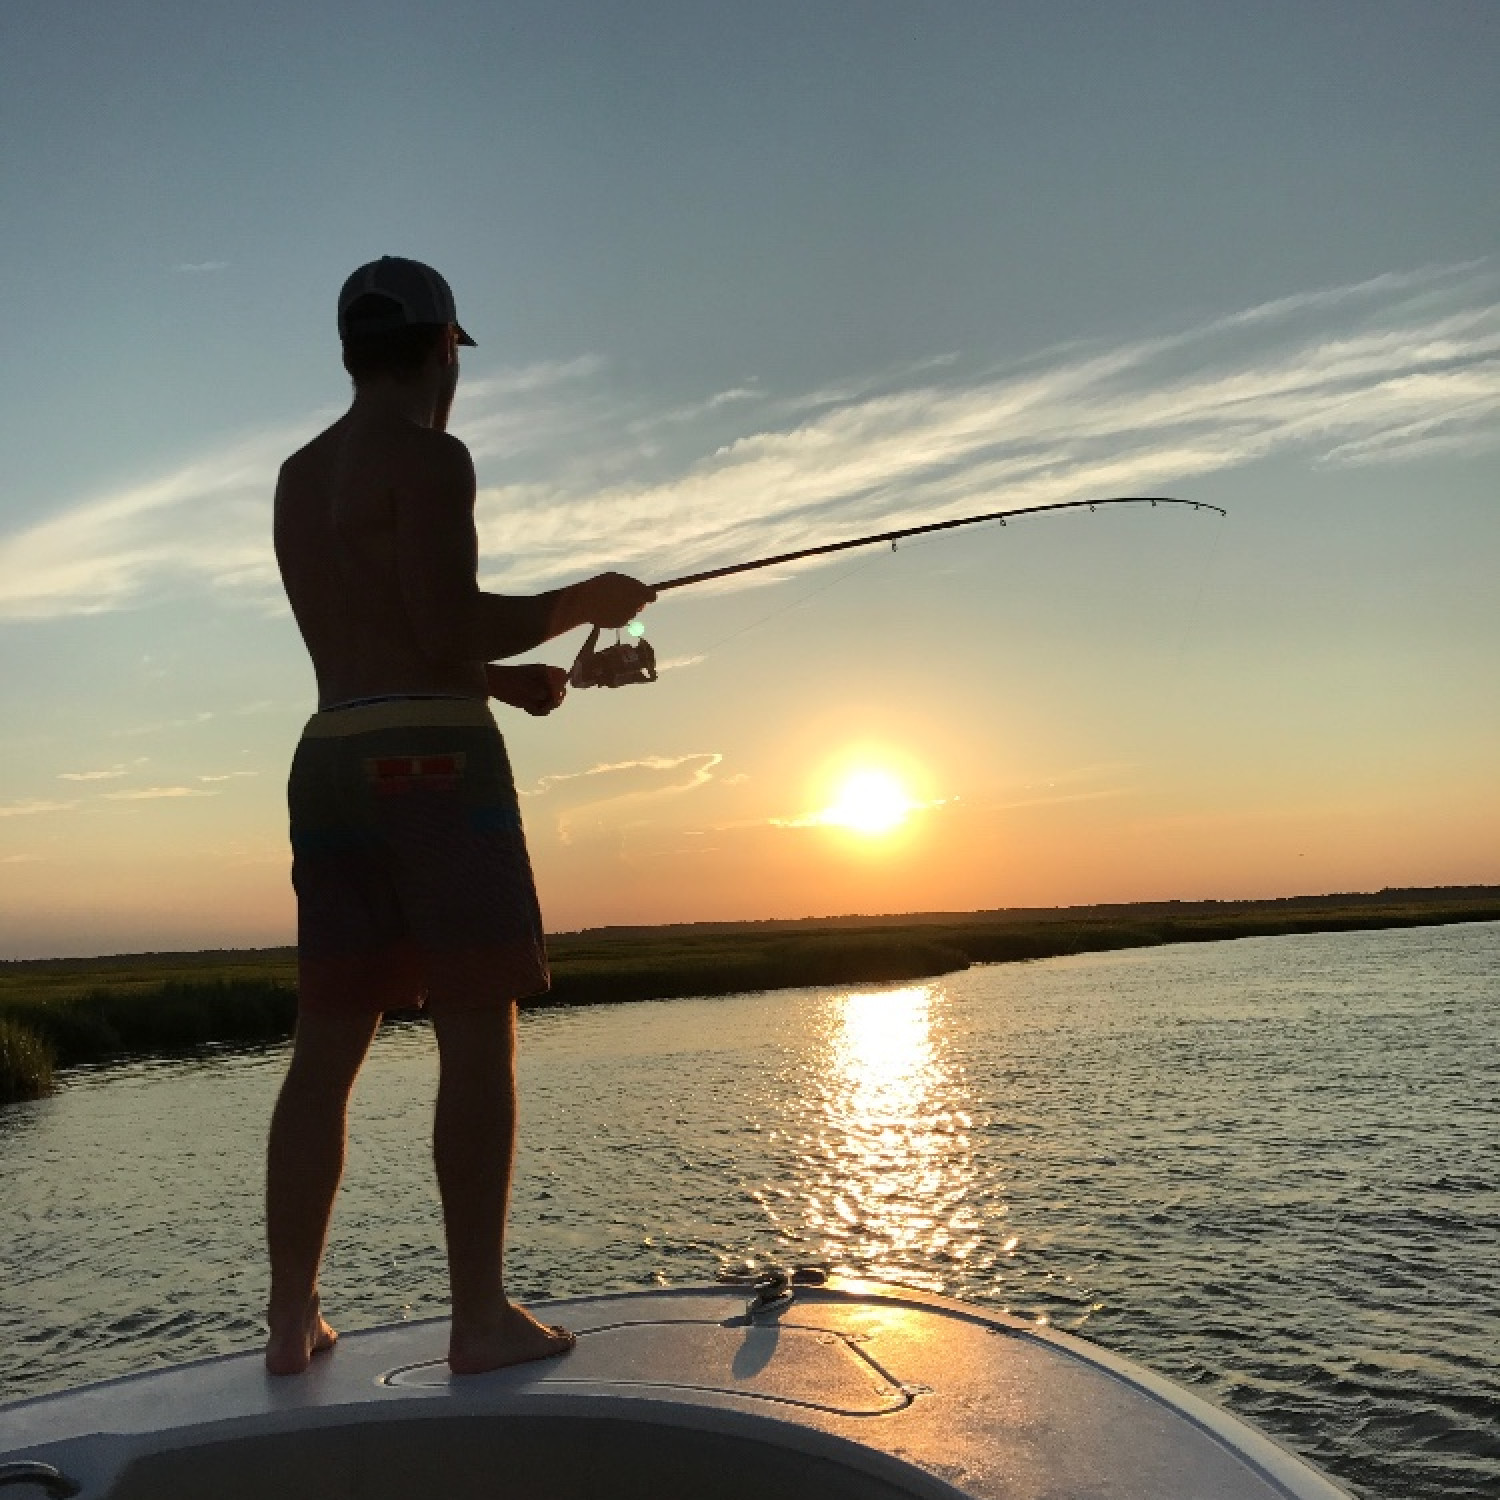 Title: Back Bay Striper Fishing - On board their Sportsman Heritage 231 Center Console - Location: Stone Harbor, NJ. Participating in the Photo Contest #SportsmanApril2018